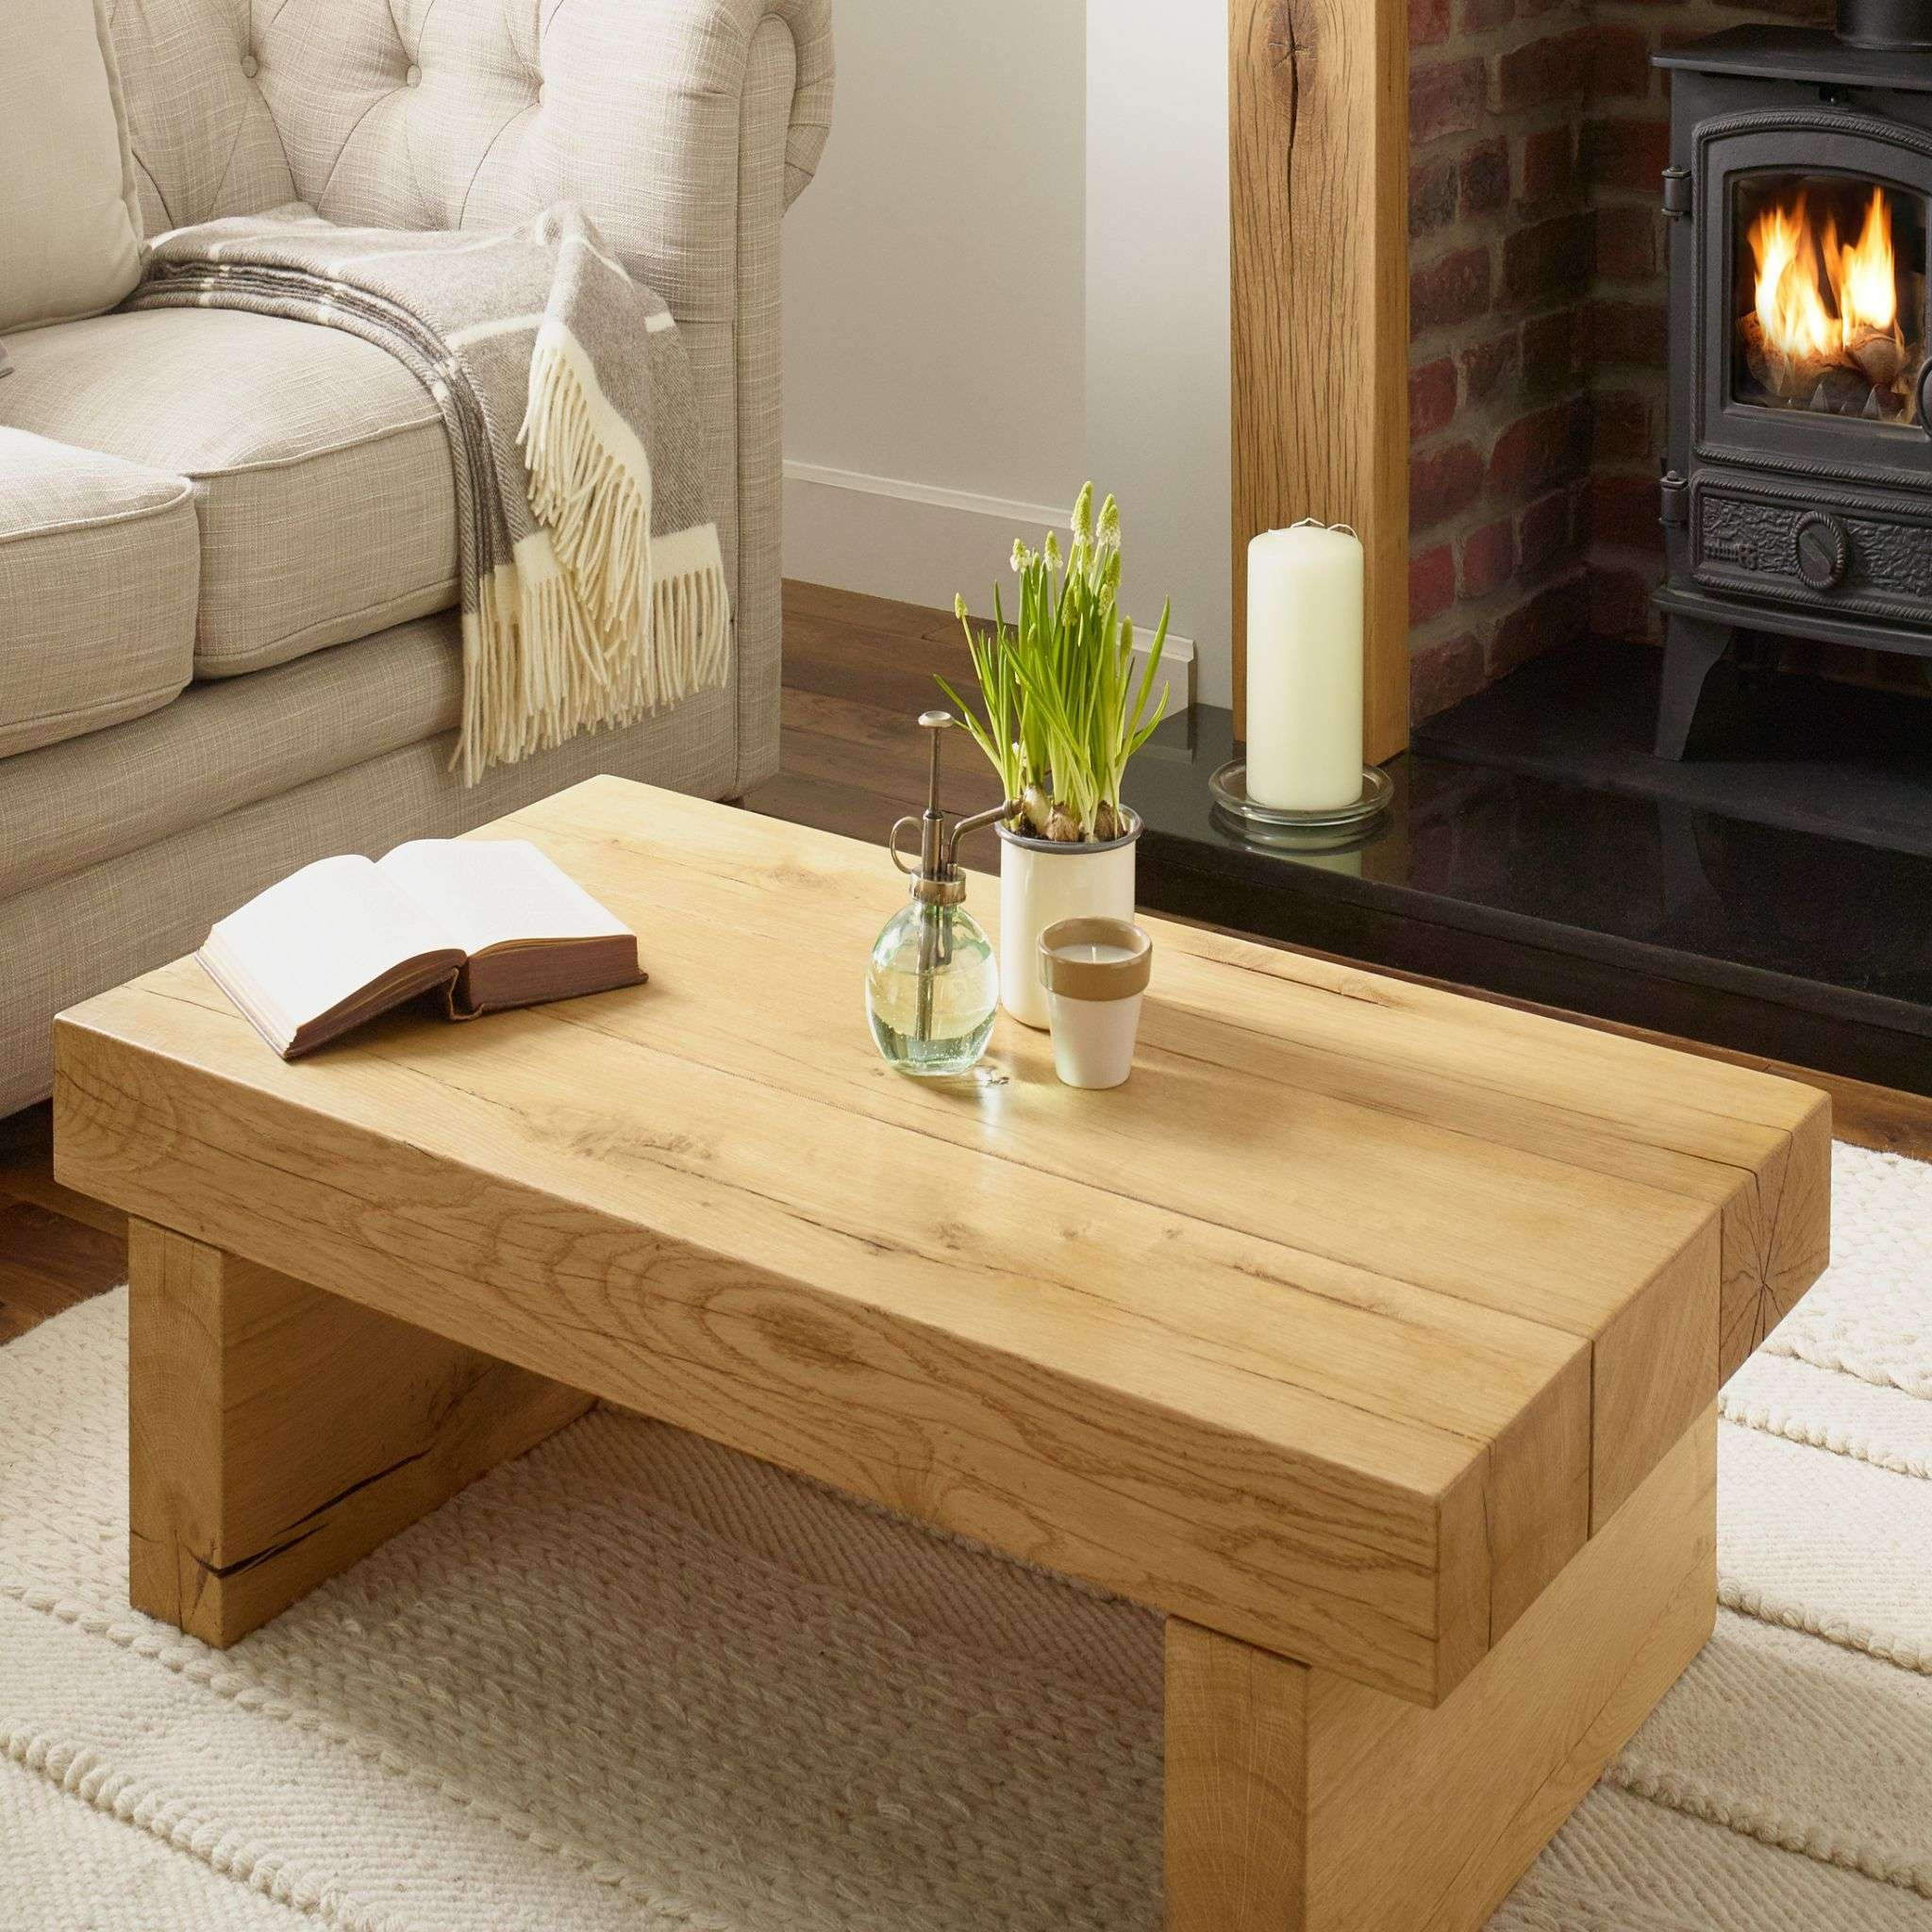 Oak Coffee Table Oxford Solid French Rustic Beam Regarding Recent Solid Oak Beam Coffee Table (View 15 of 20)